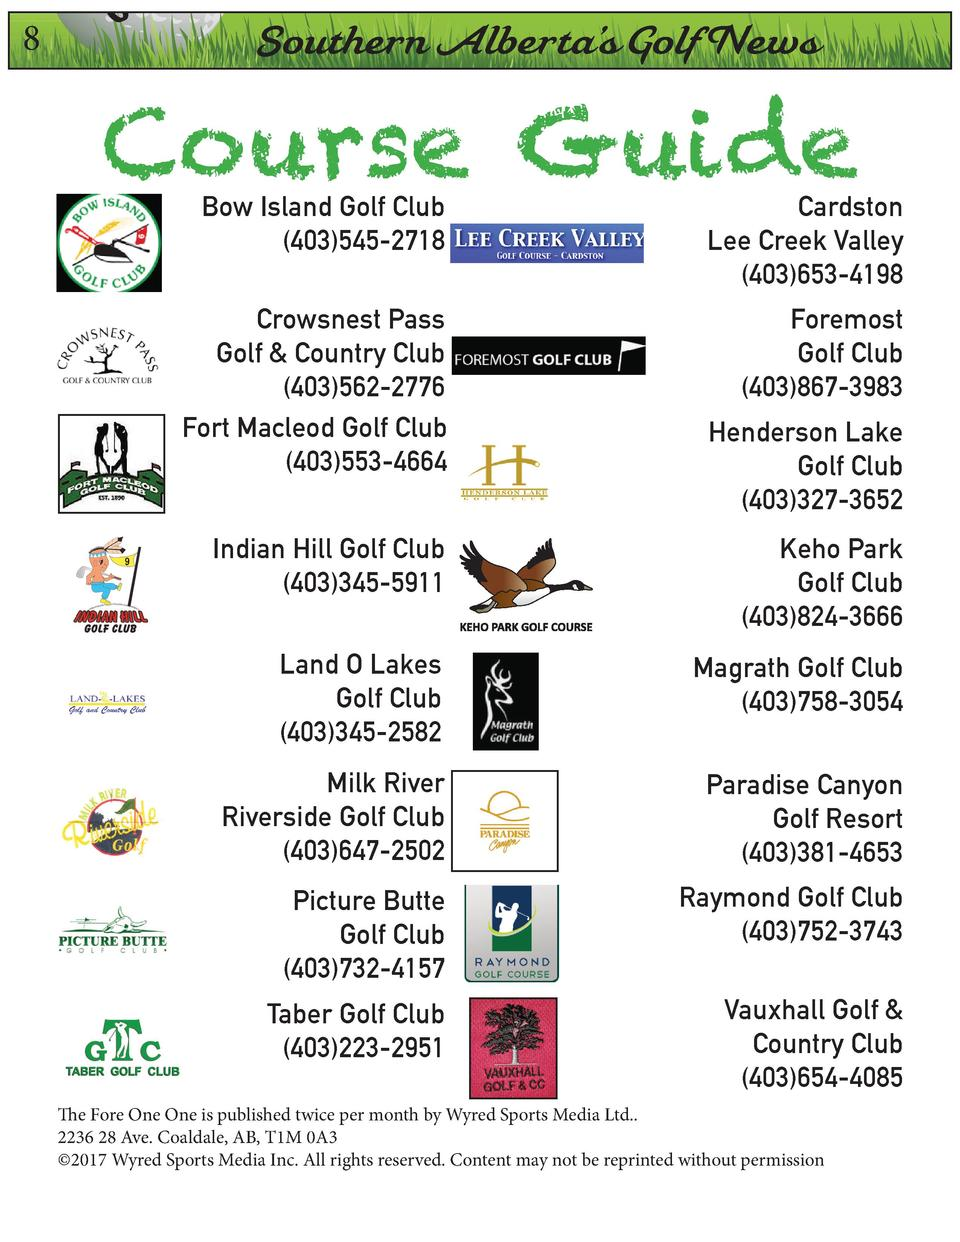 8  On  Southern Alberta   s Golf News  Course Guide Bow Island Golf Club  403 545-2718  Cardston Lee Creek Valley  403 653...